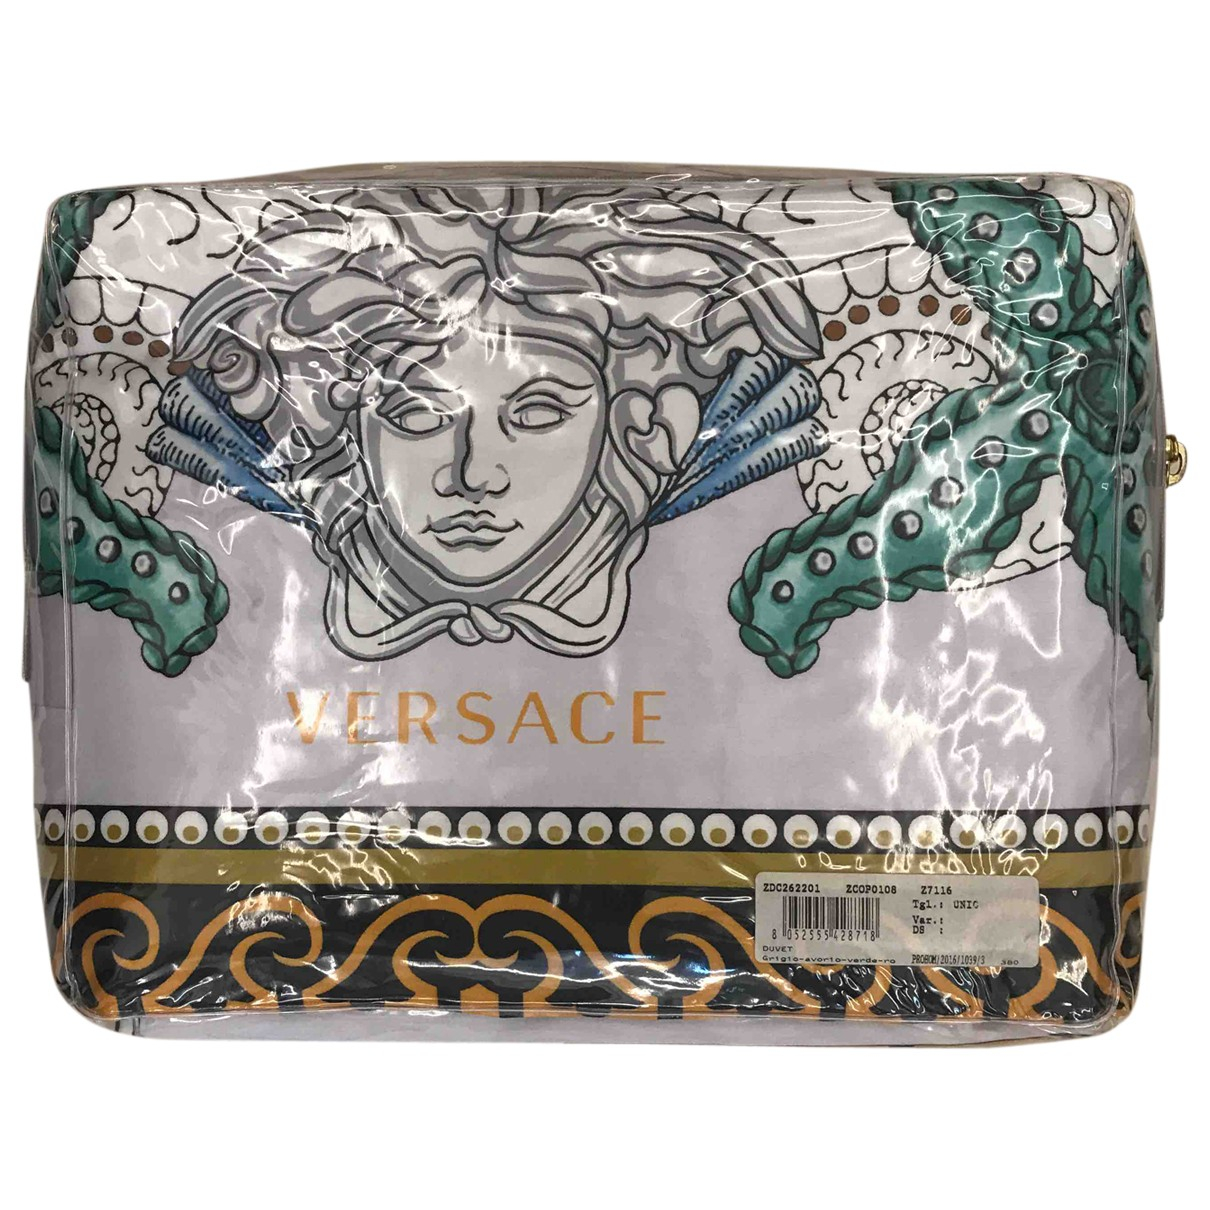 Versace N Cotton Textiles for Life & Living N